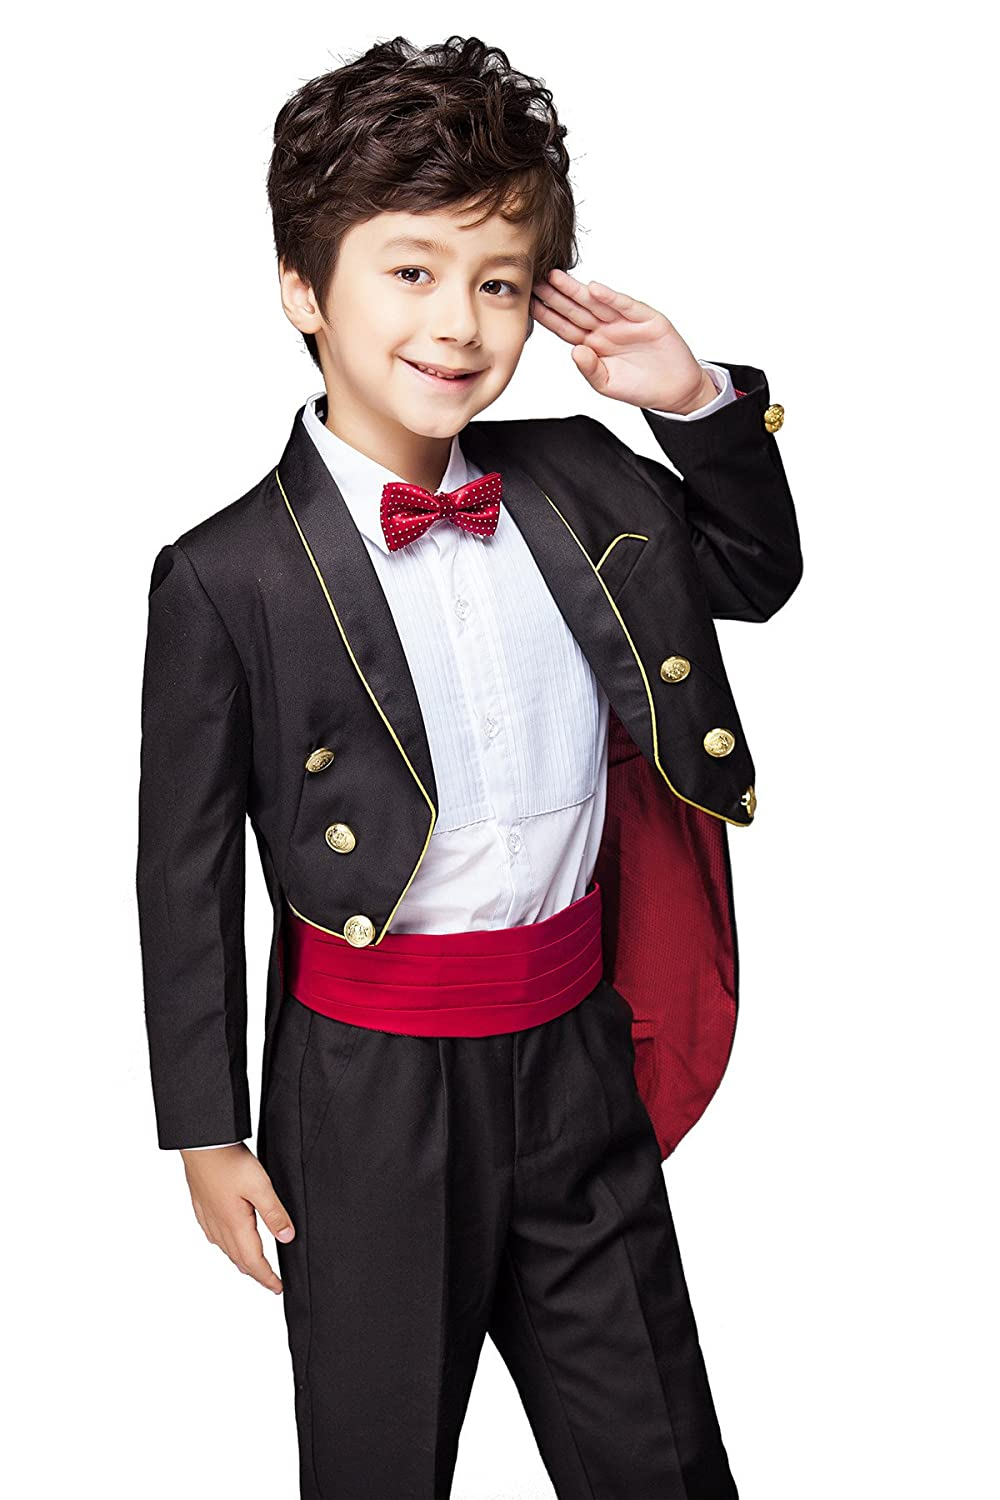 a42d9b683915 Top8  Yuanlu Boys Tuxedo with Tail Suit Shawl Collar Tailcoat Pants Shirt  and Bow Tie White and Black